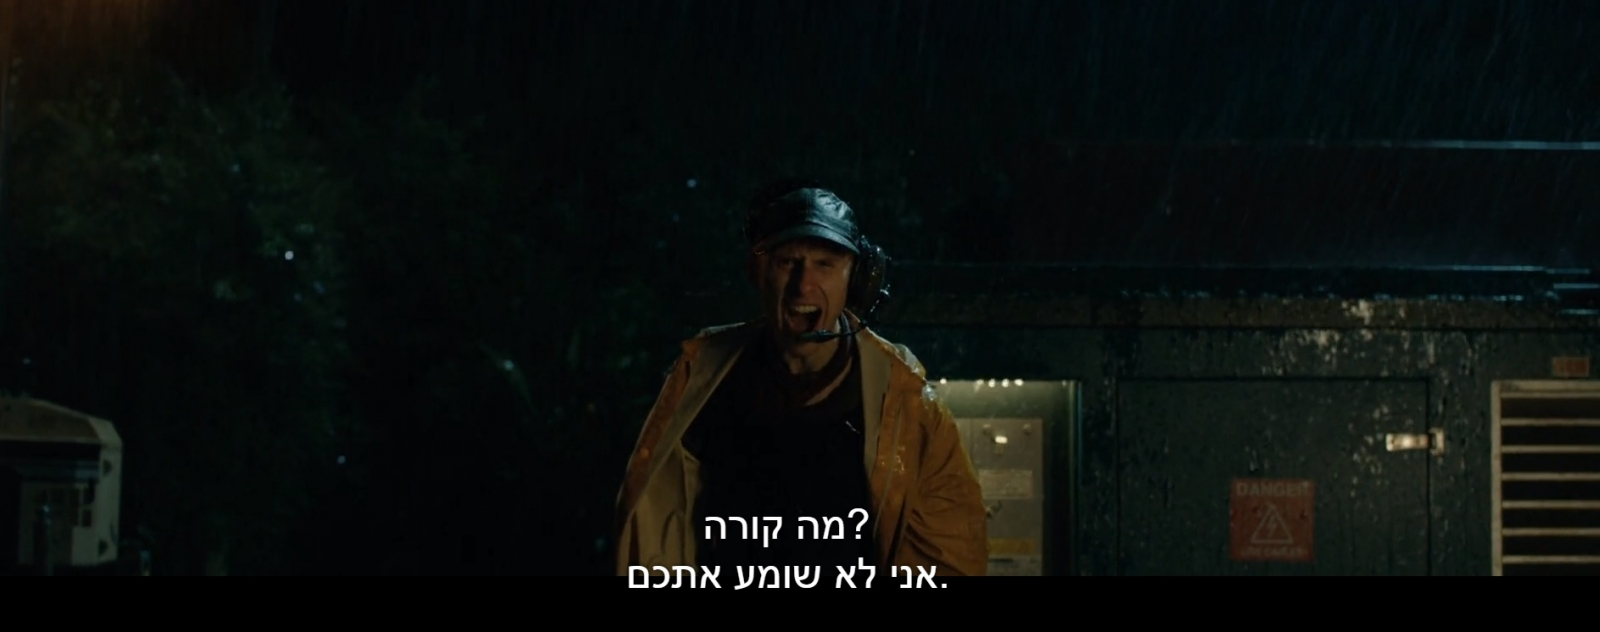 Hebrew subtitles not showing correctly - General/Windows - Emby